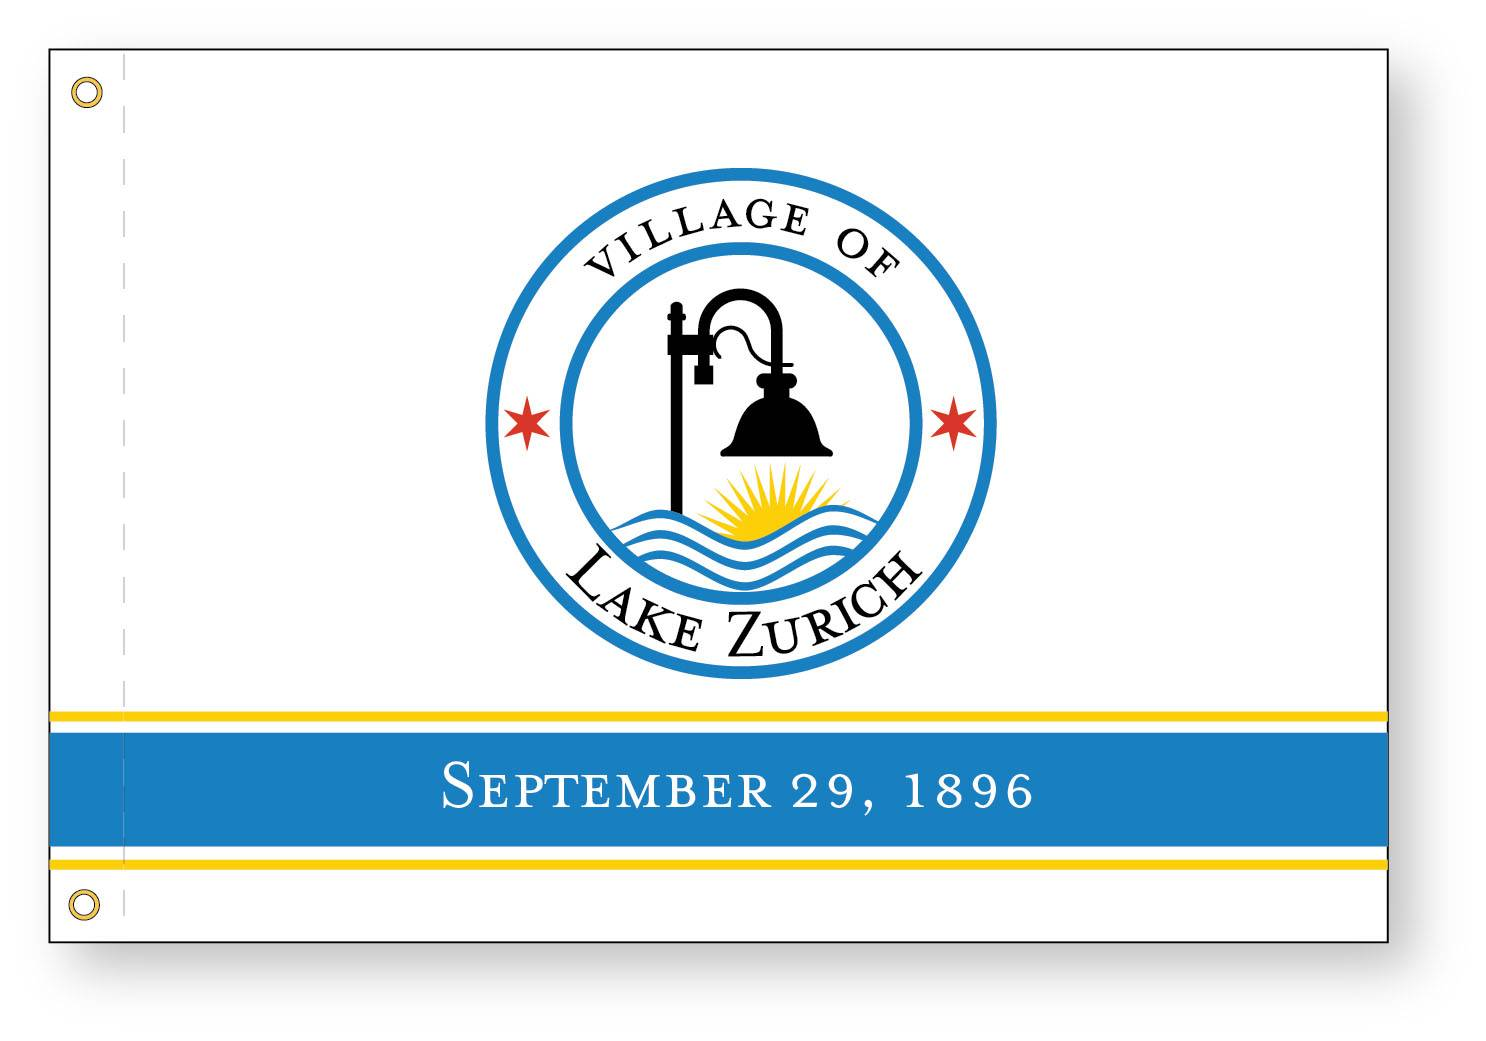 New village seal, logos, flag and slogan for Lake Zurich government